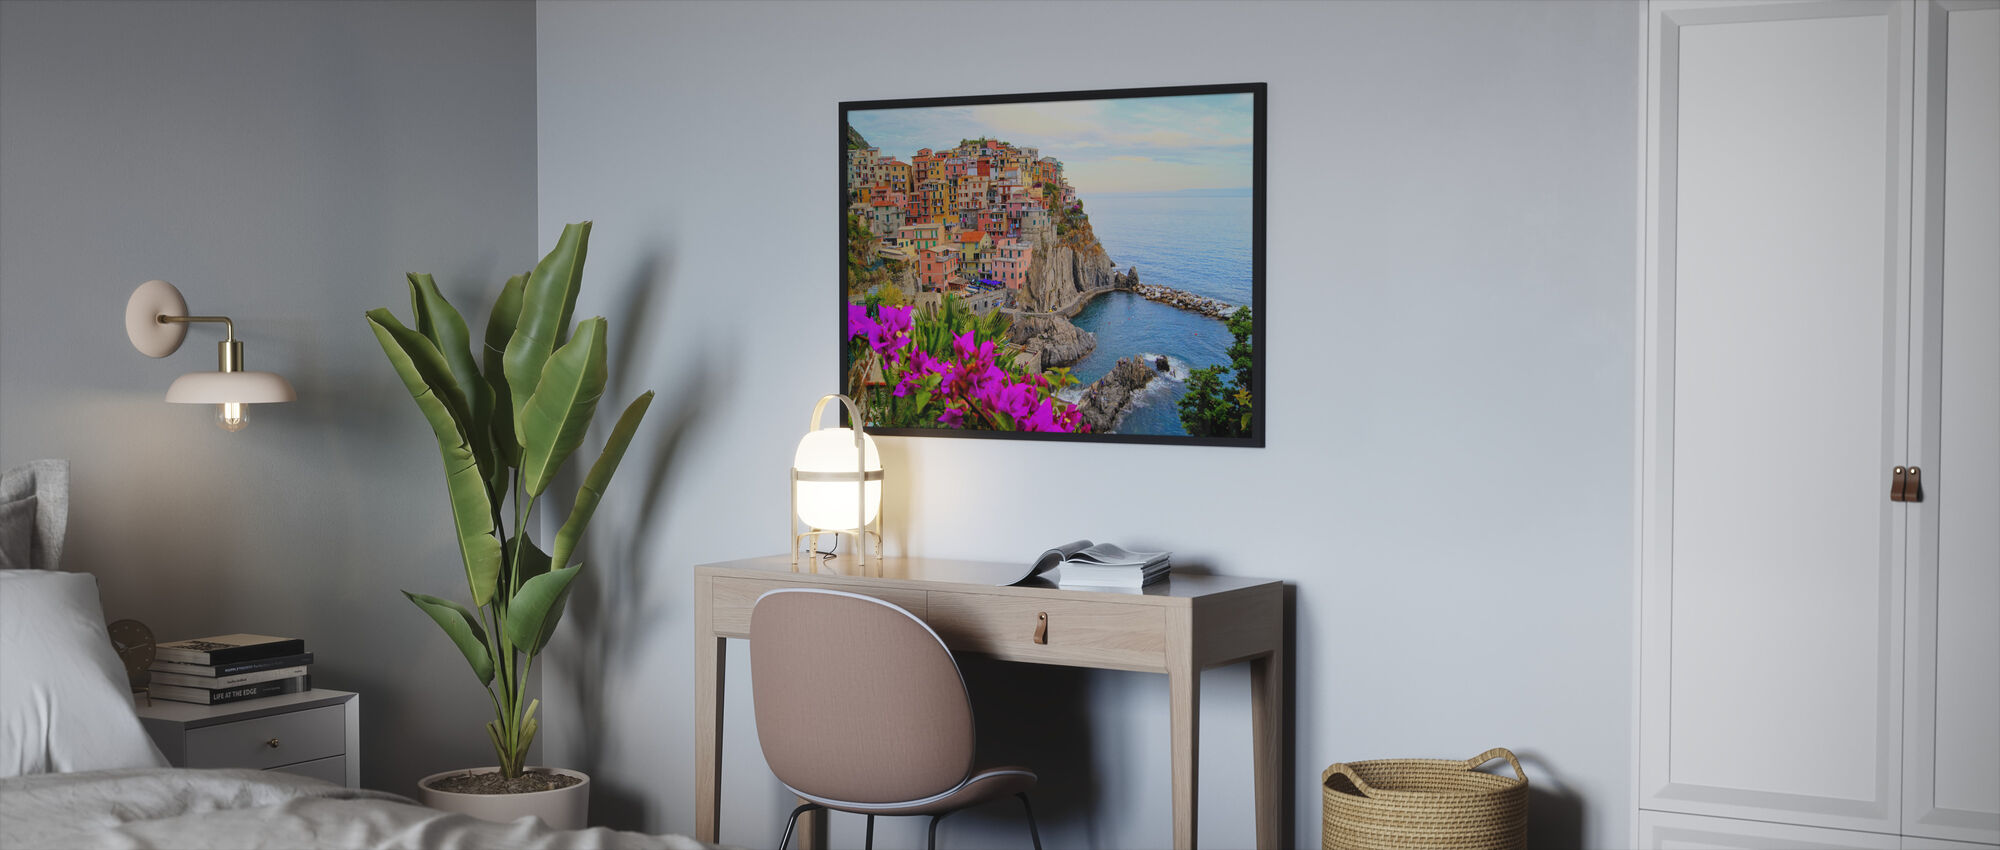 Village of Manarola, Italy - Framed print - Bedroom